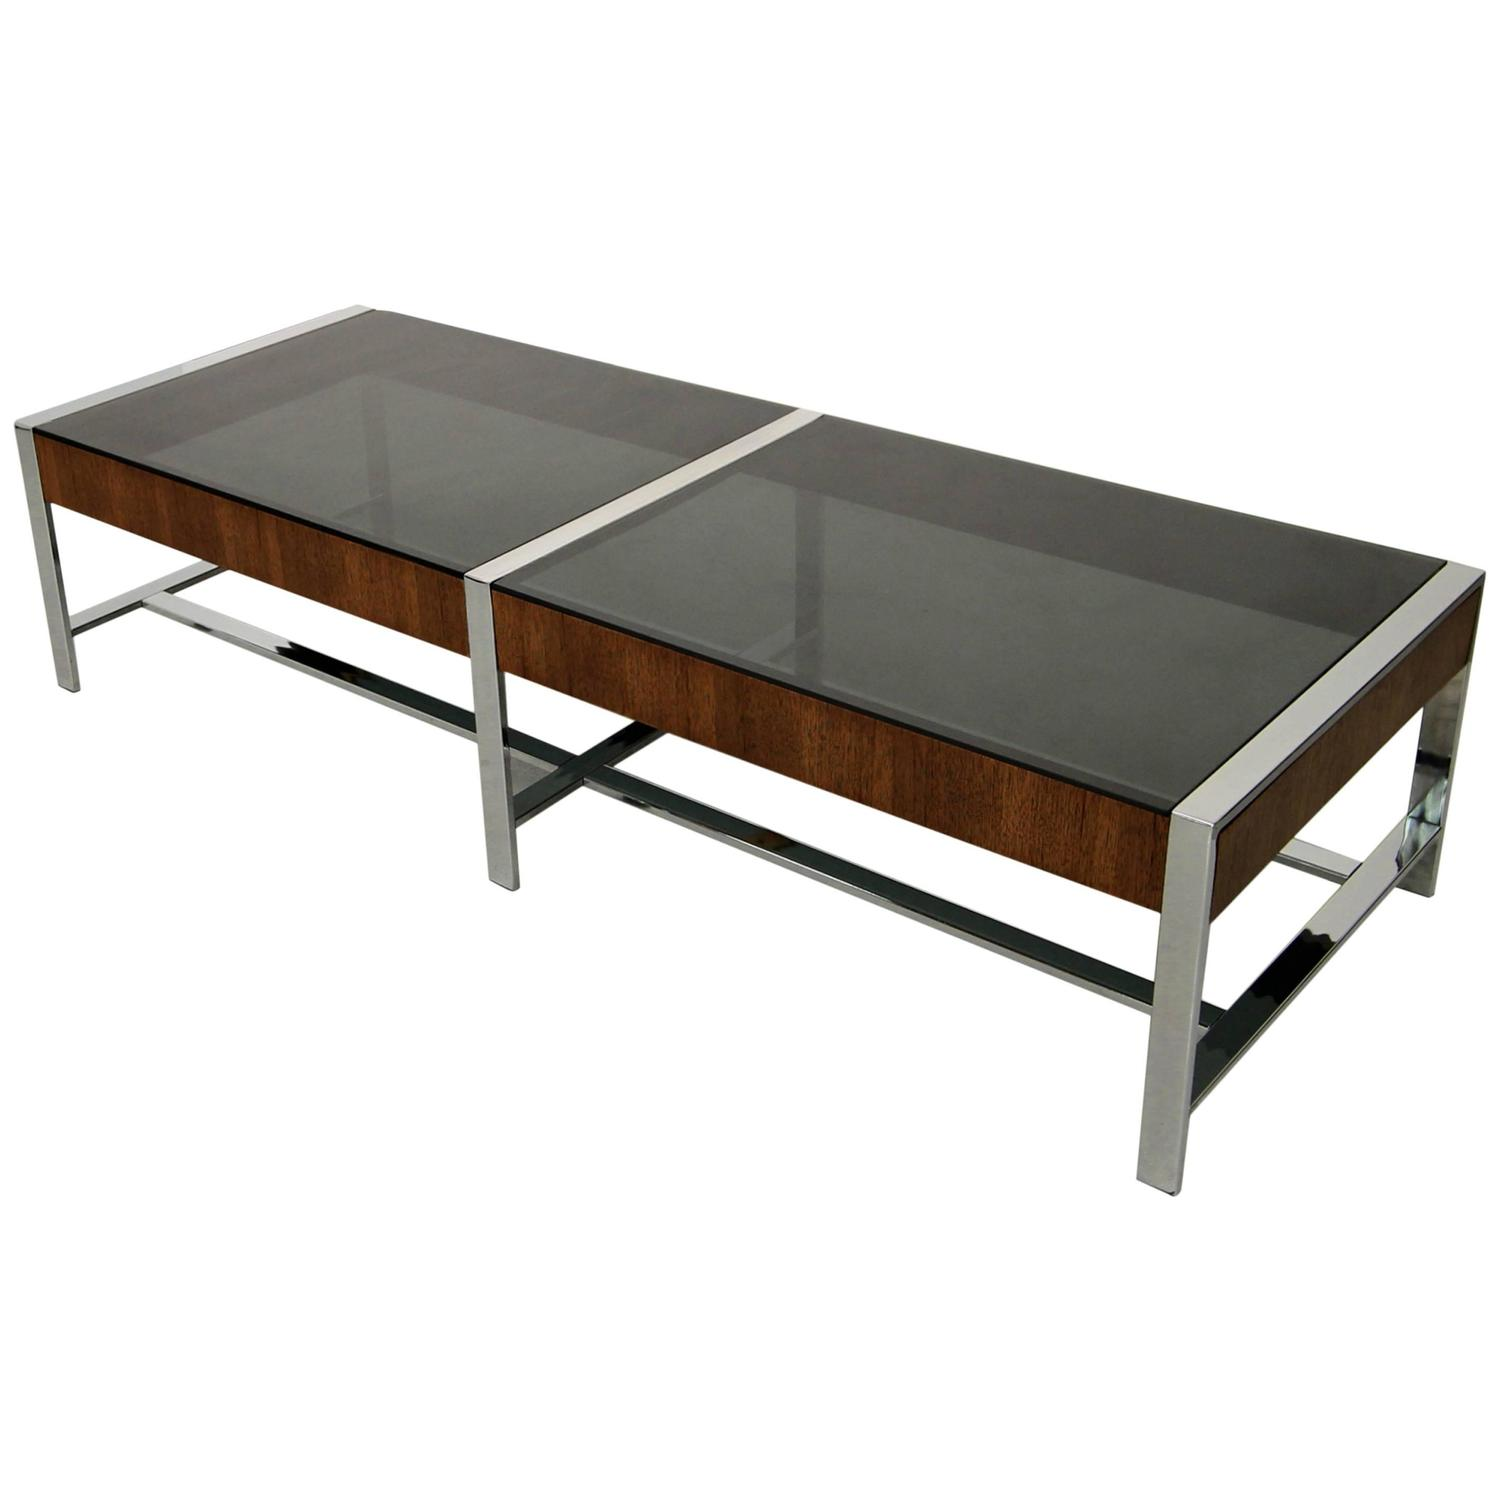 Mid century modern chrome and smoked glass coffee table at for Mid century modern coffee table